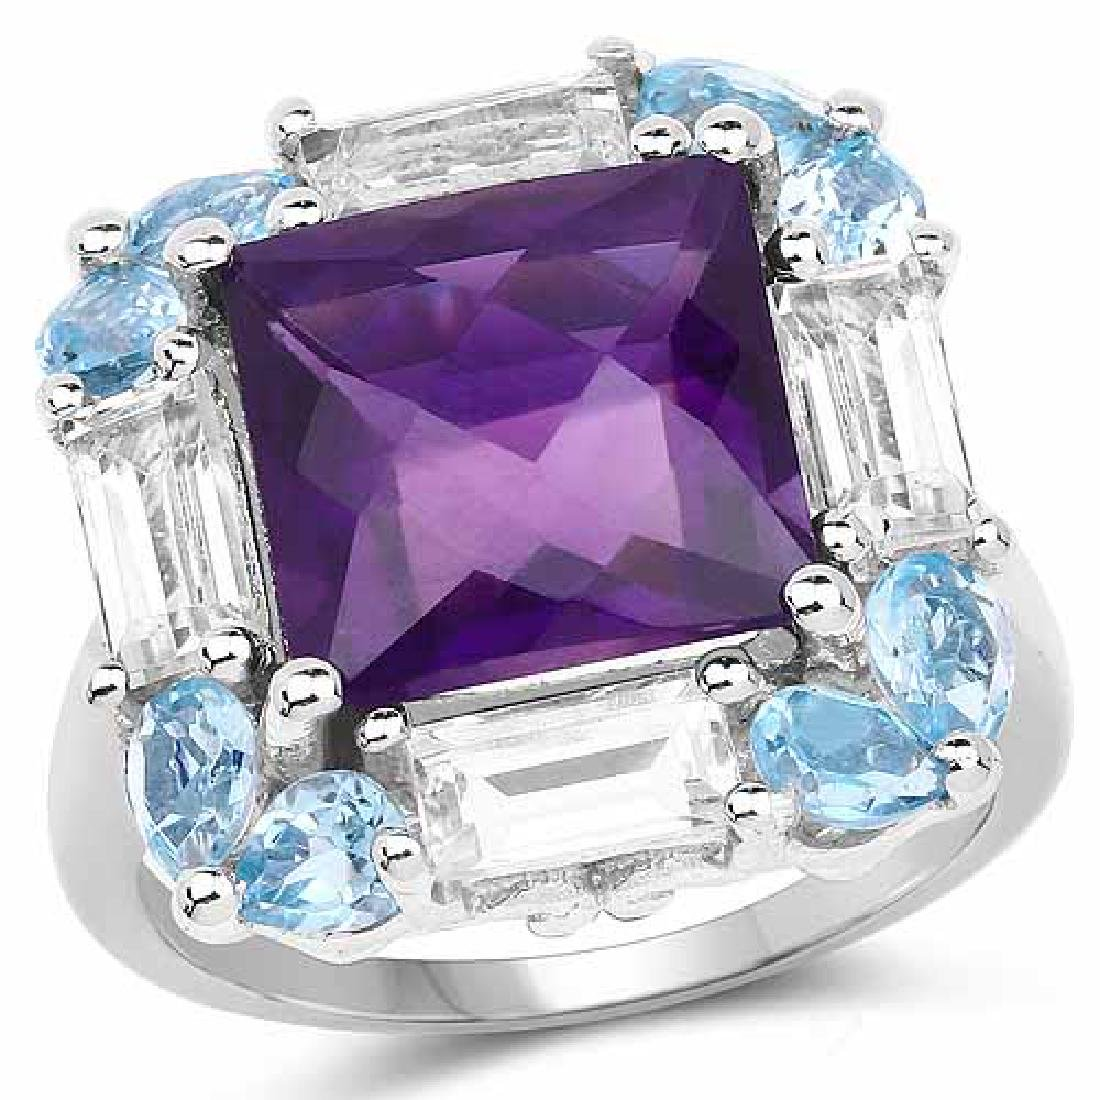 7.51 Carat Genuine Amethyst Swiss Blue Topaz and Whit